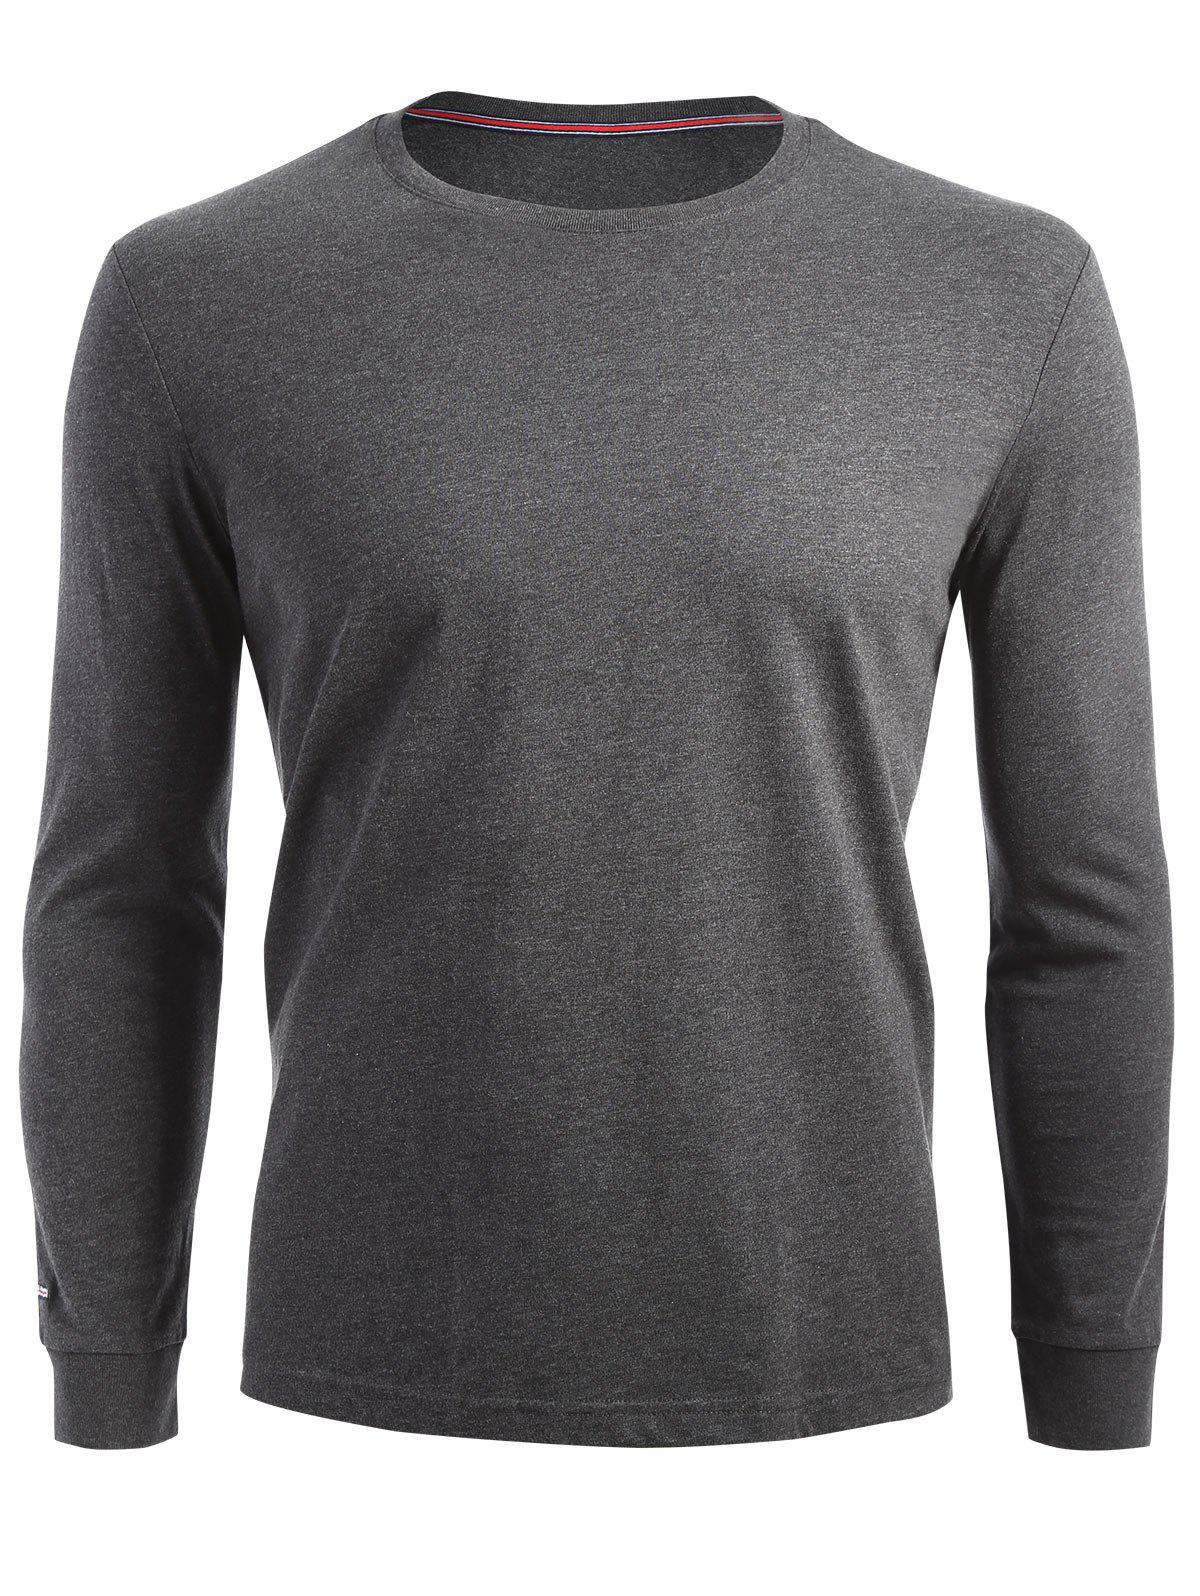 Stretch Long Sleeve T-shirt - DARK HEATHER GRAY 2XL